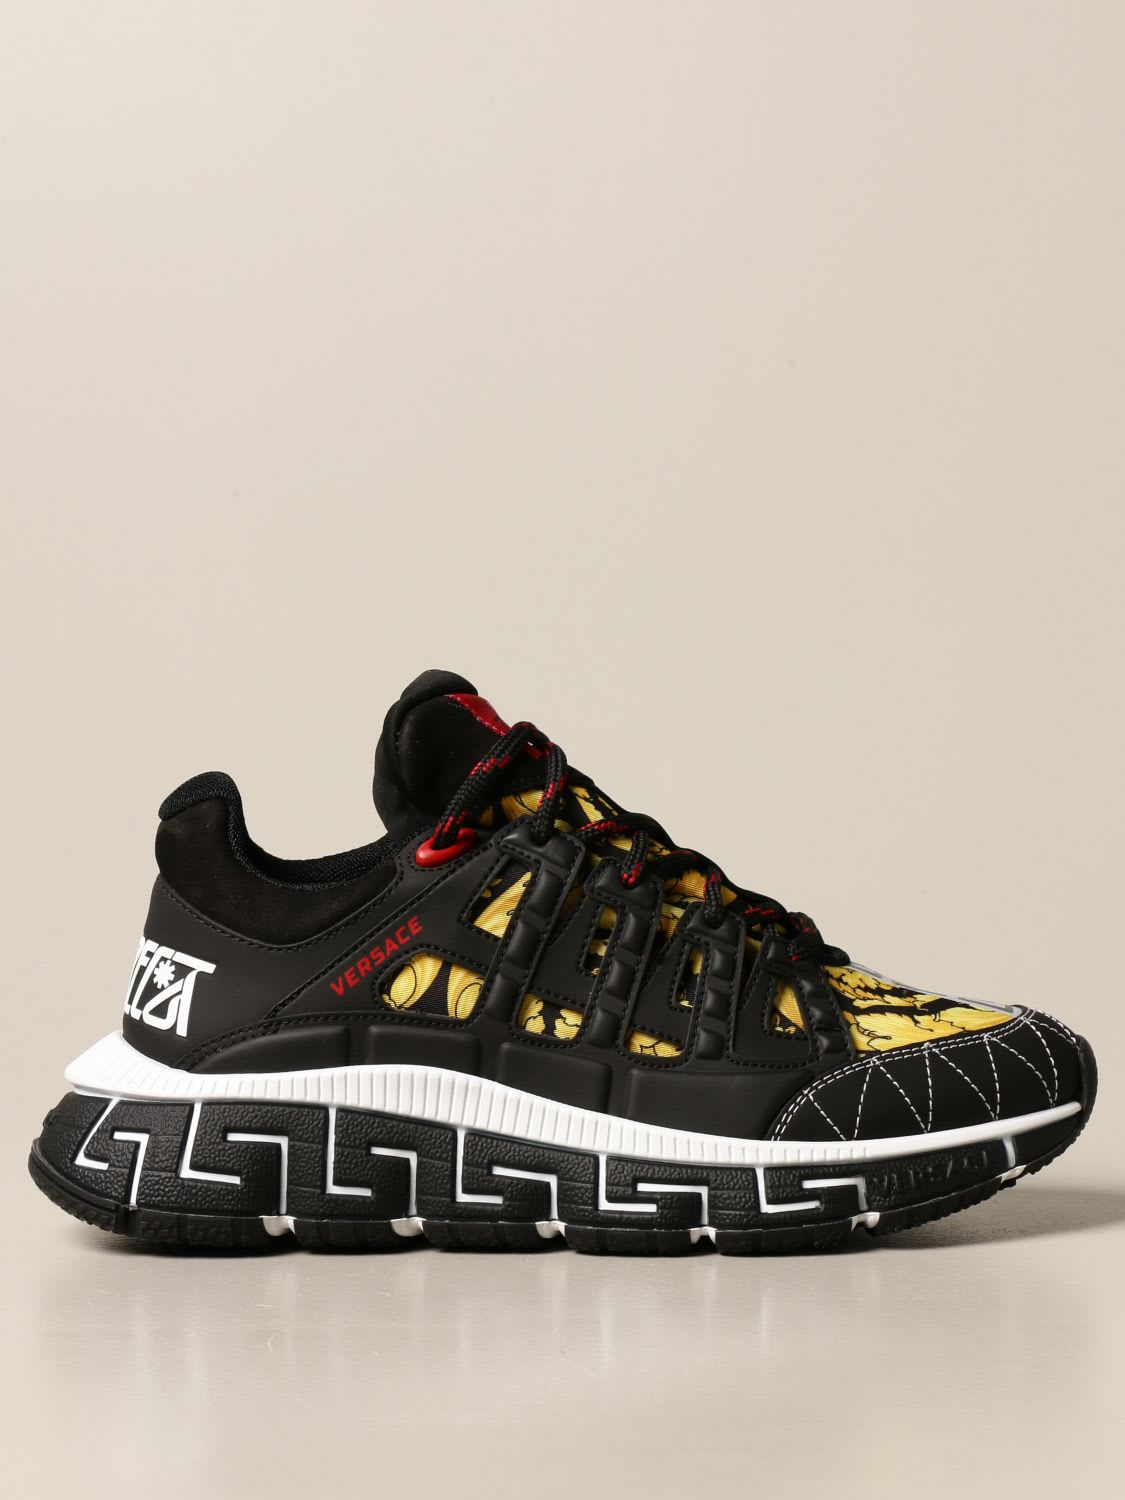 Buy Versace Sneakers Chain Reaction Versace Sneakers In Leather And Baroque Canvas online, shop Versace shoes with free shipping